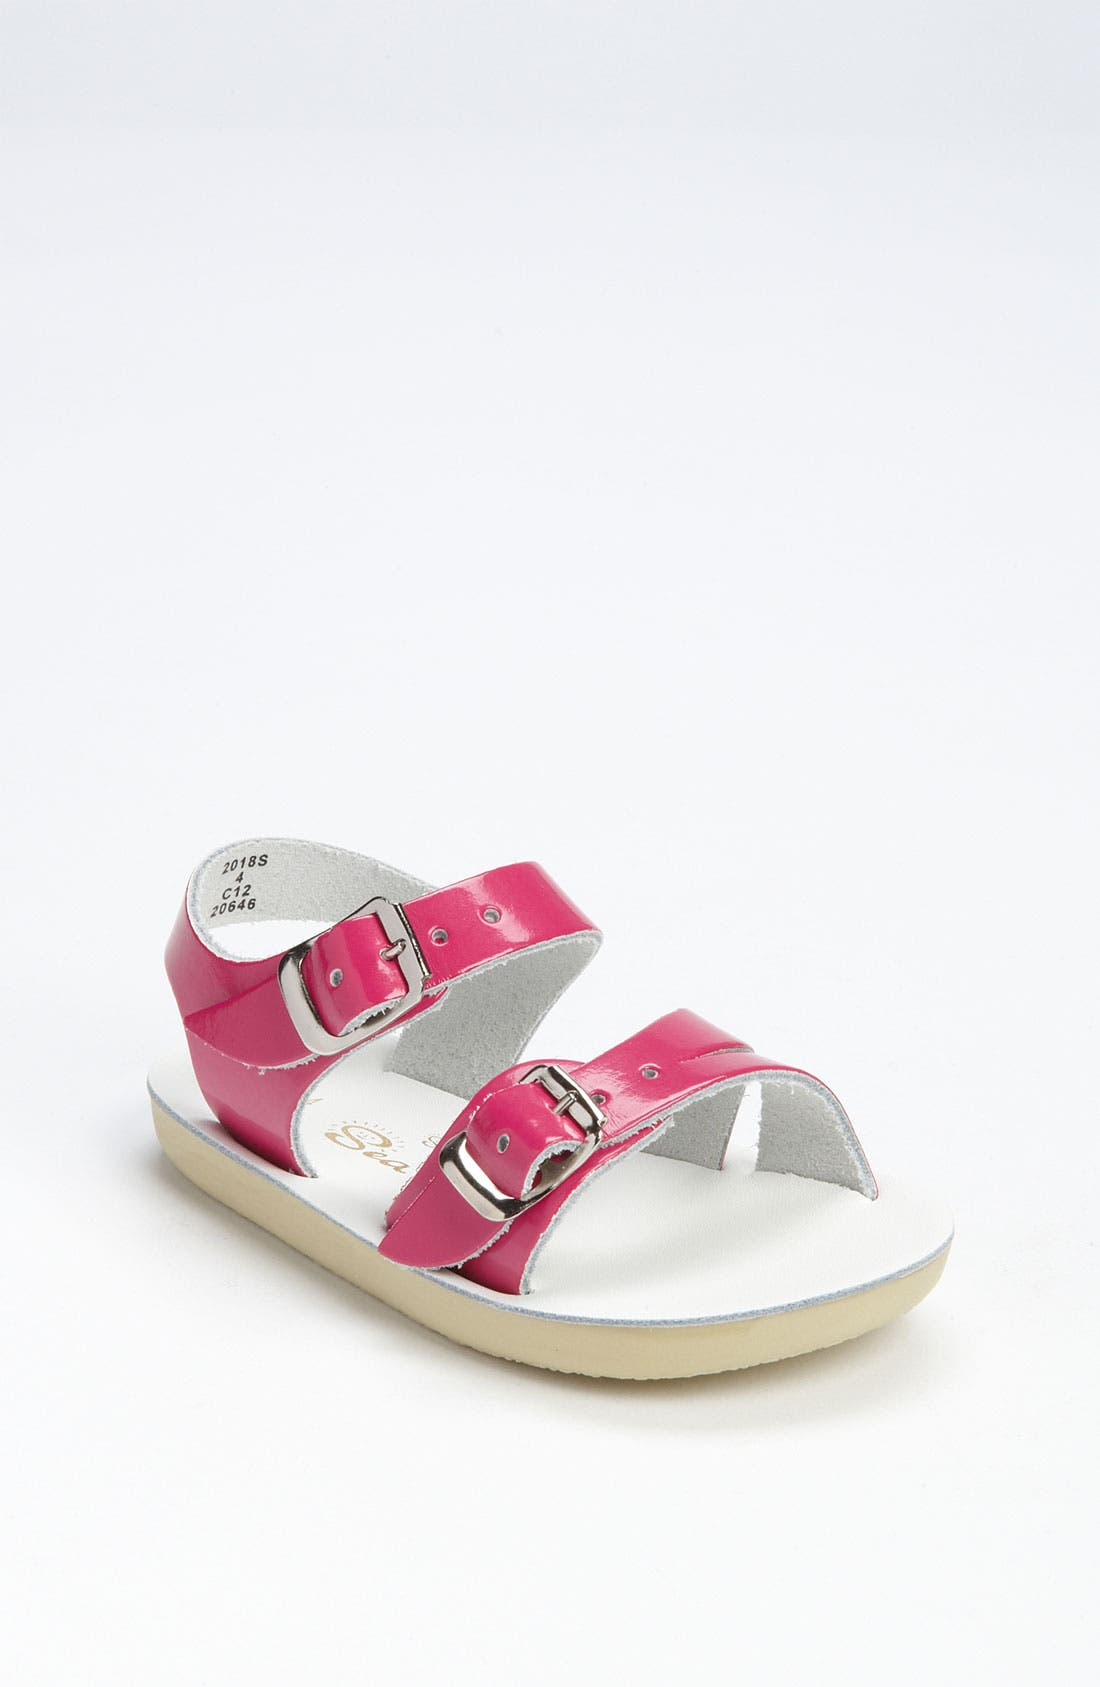 Alternate Image 1 Selected - Salt Water Sandals by Hoy 'Sea Wee' Sandal (Baby)